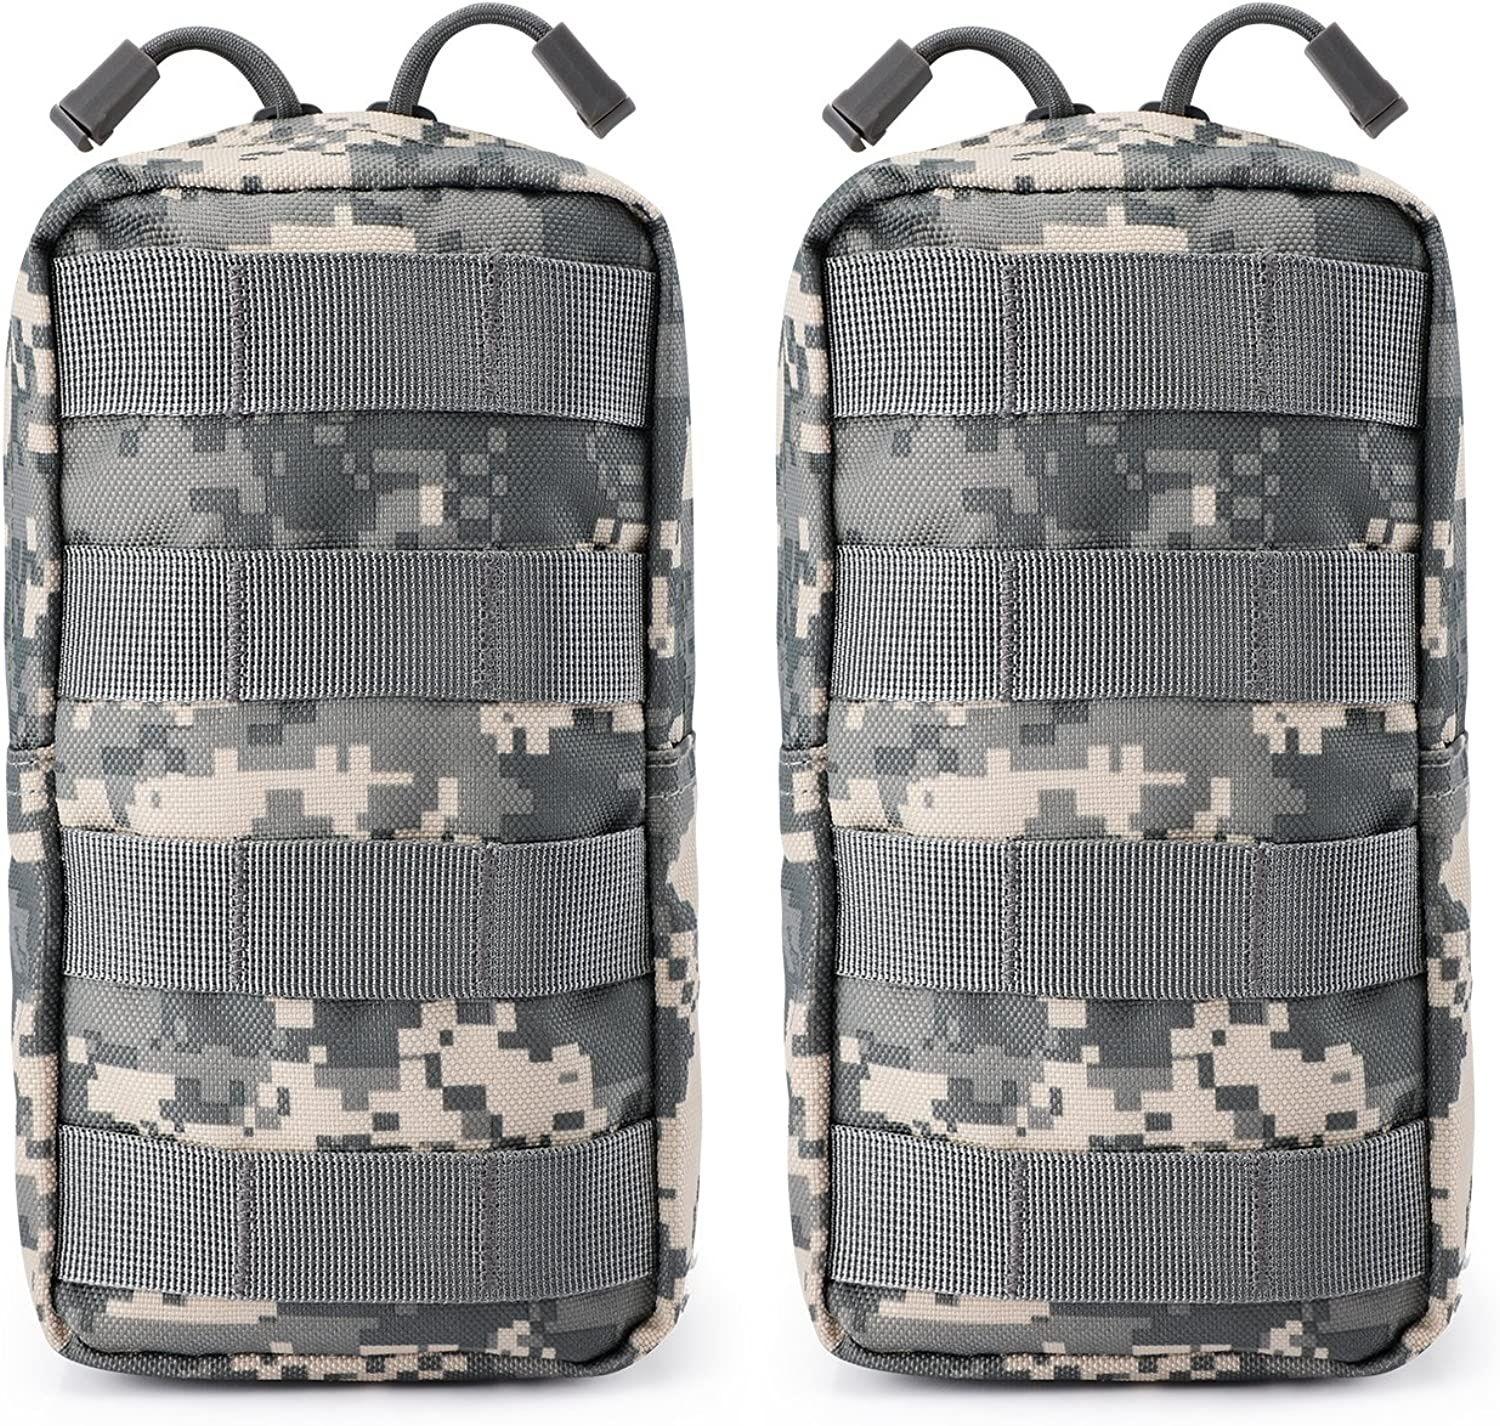 Azarxis 2 Pack Molle Tactical Pouch Multi-Purpose Military Admin EDC Utility Pouch Backpack Accessories Gadget Tool Gear Organizer for Hiking Camping Outdoor